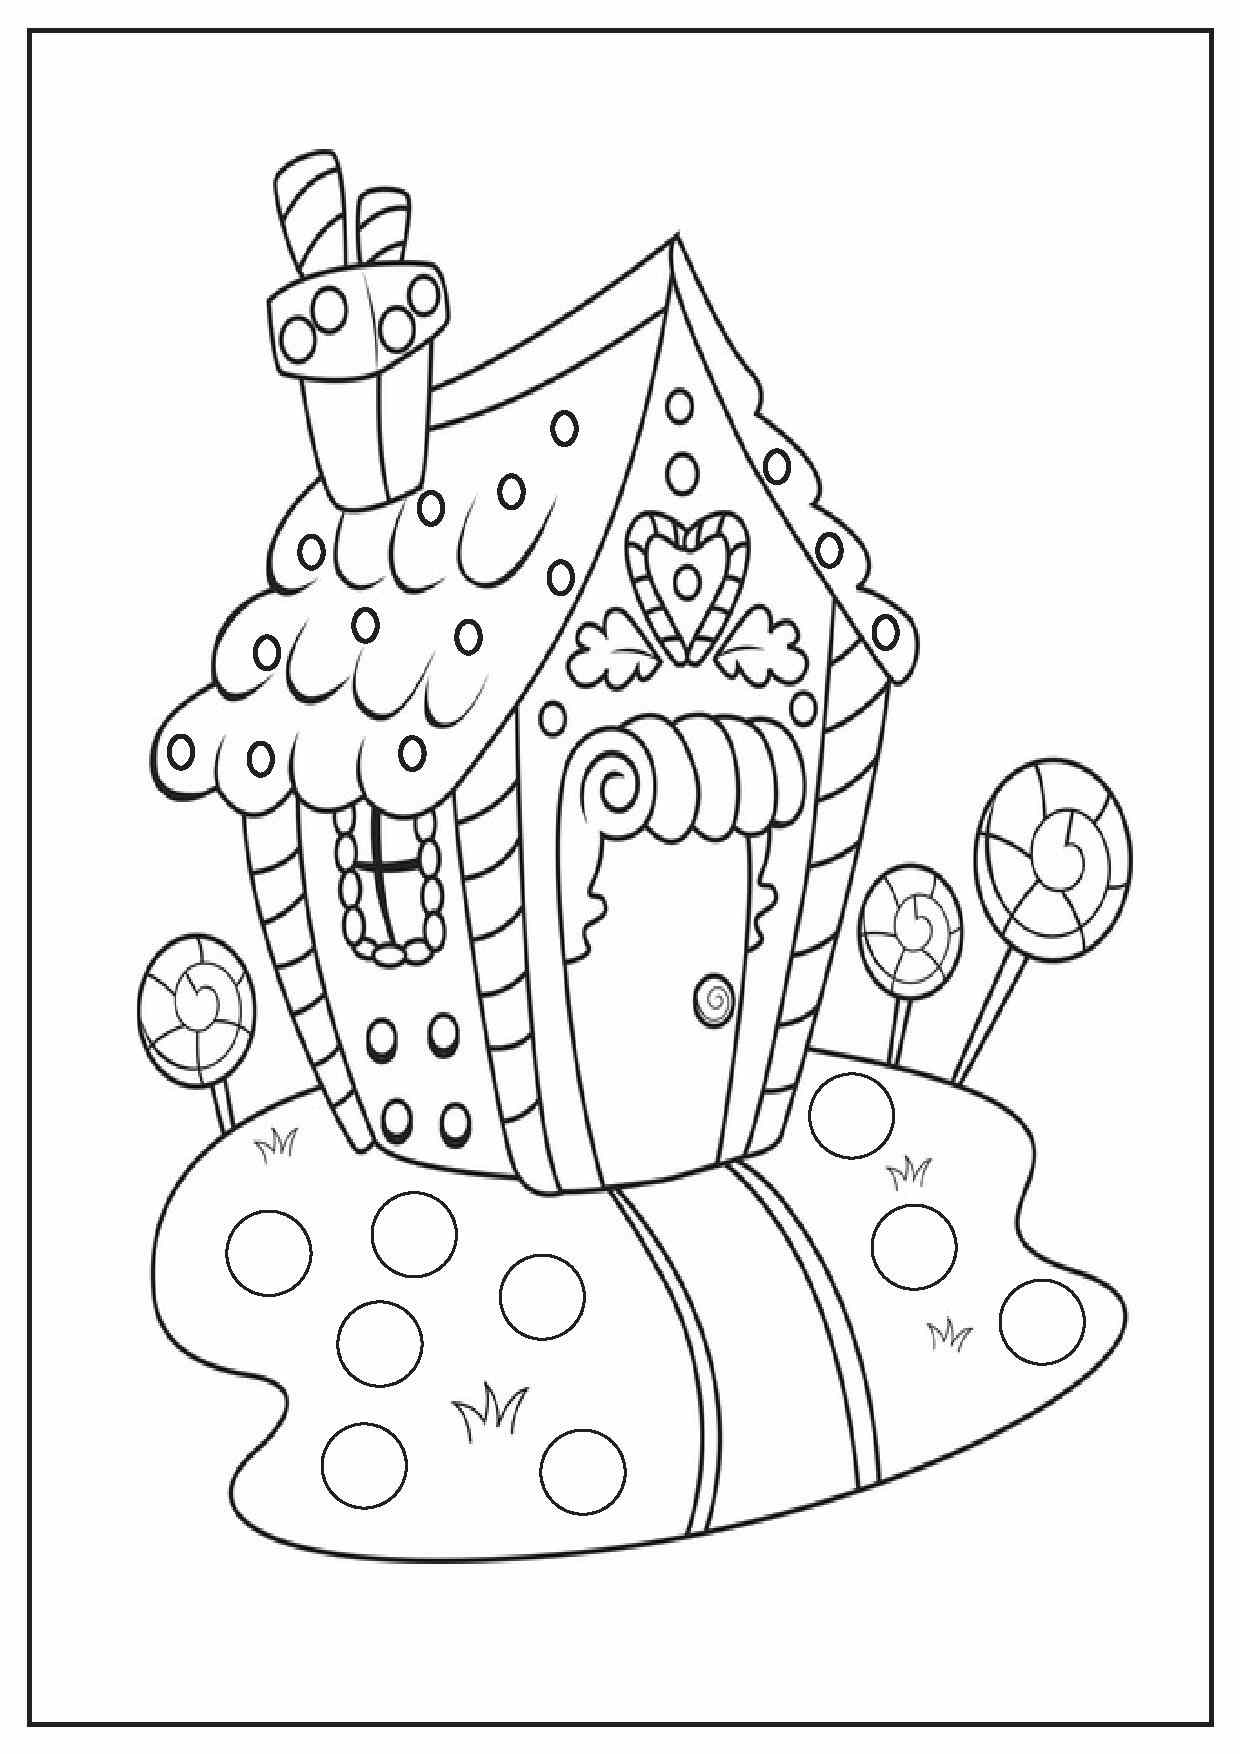 Kindergarten coloring sheets only coloring pages Coloring book kindergarten